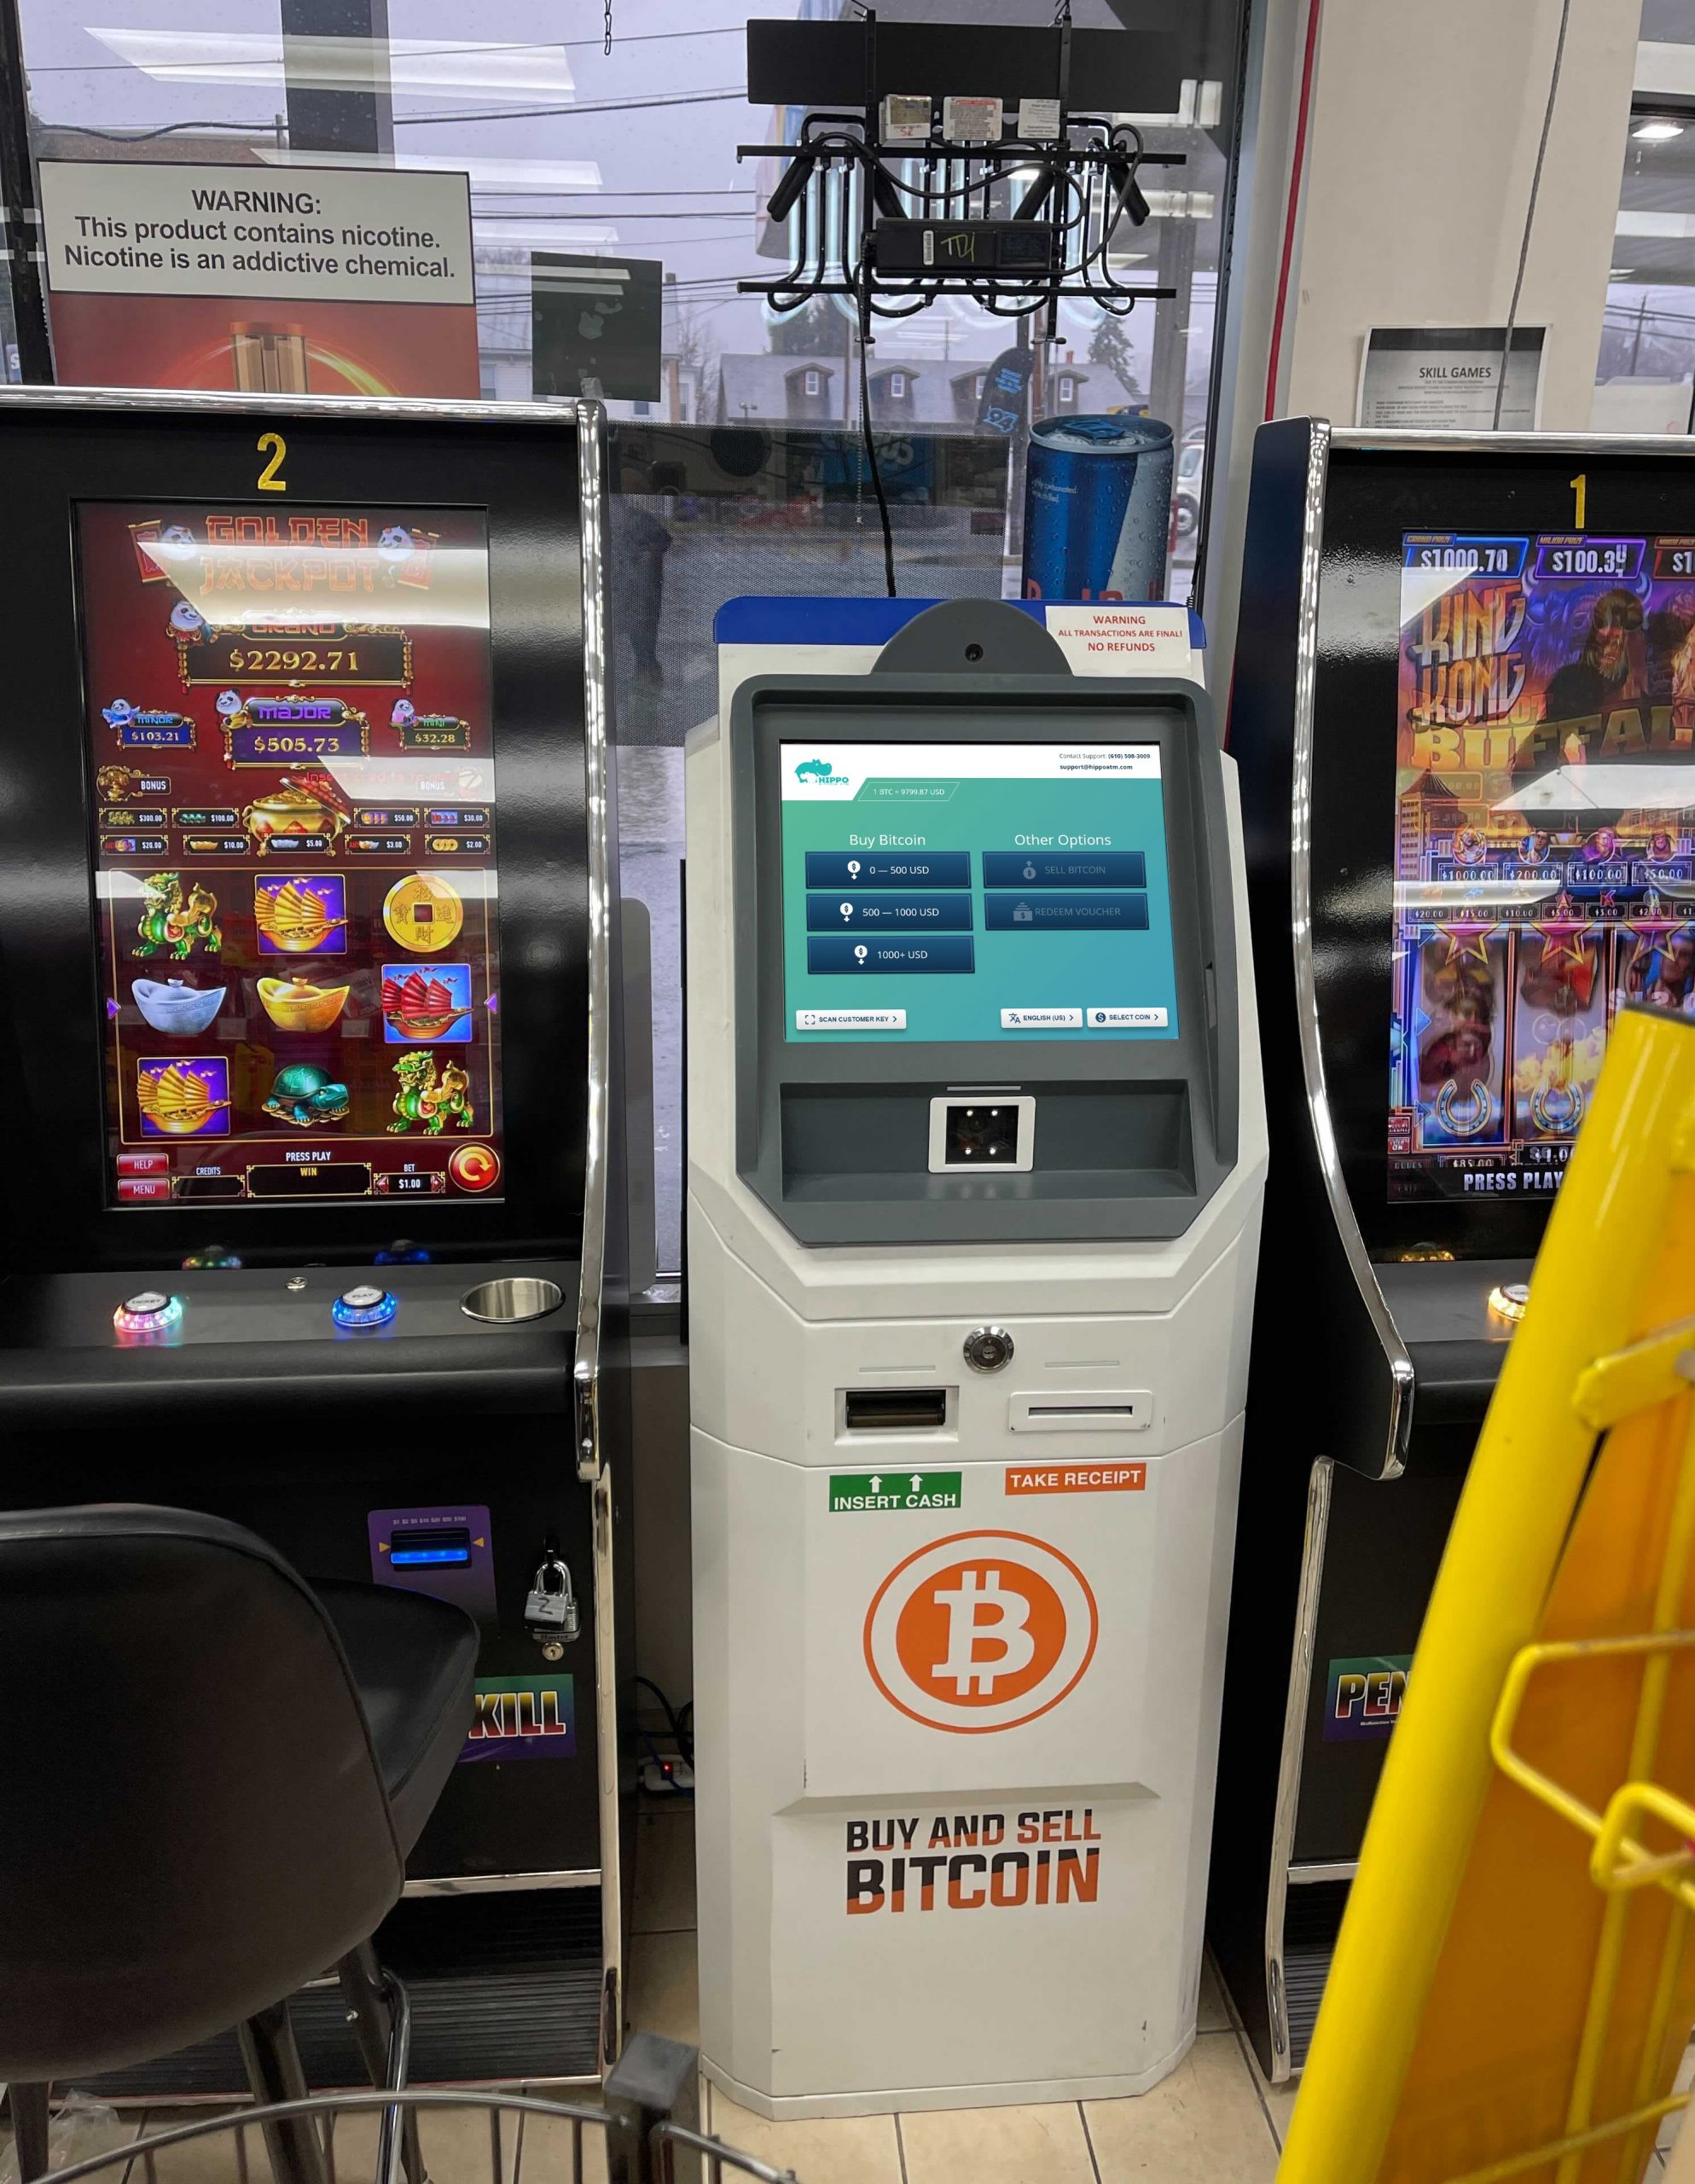 Hippo Bitcoin ATM Robsonia PA Gas station always open site3